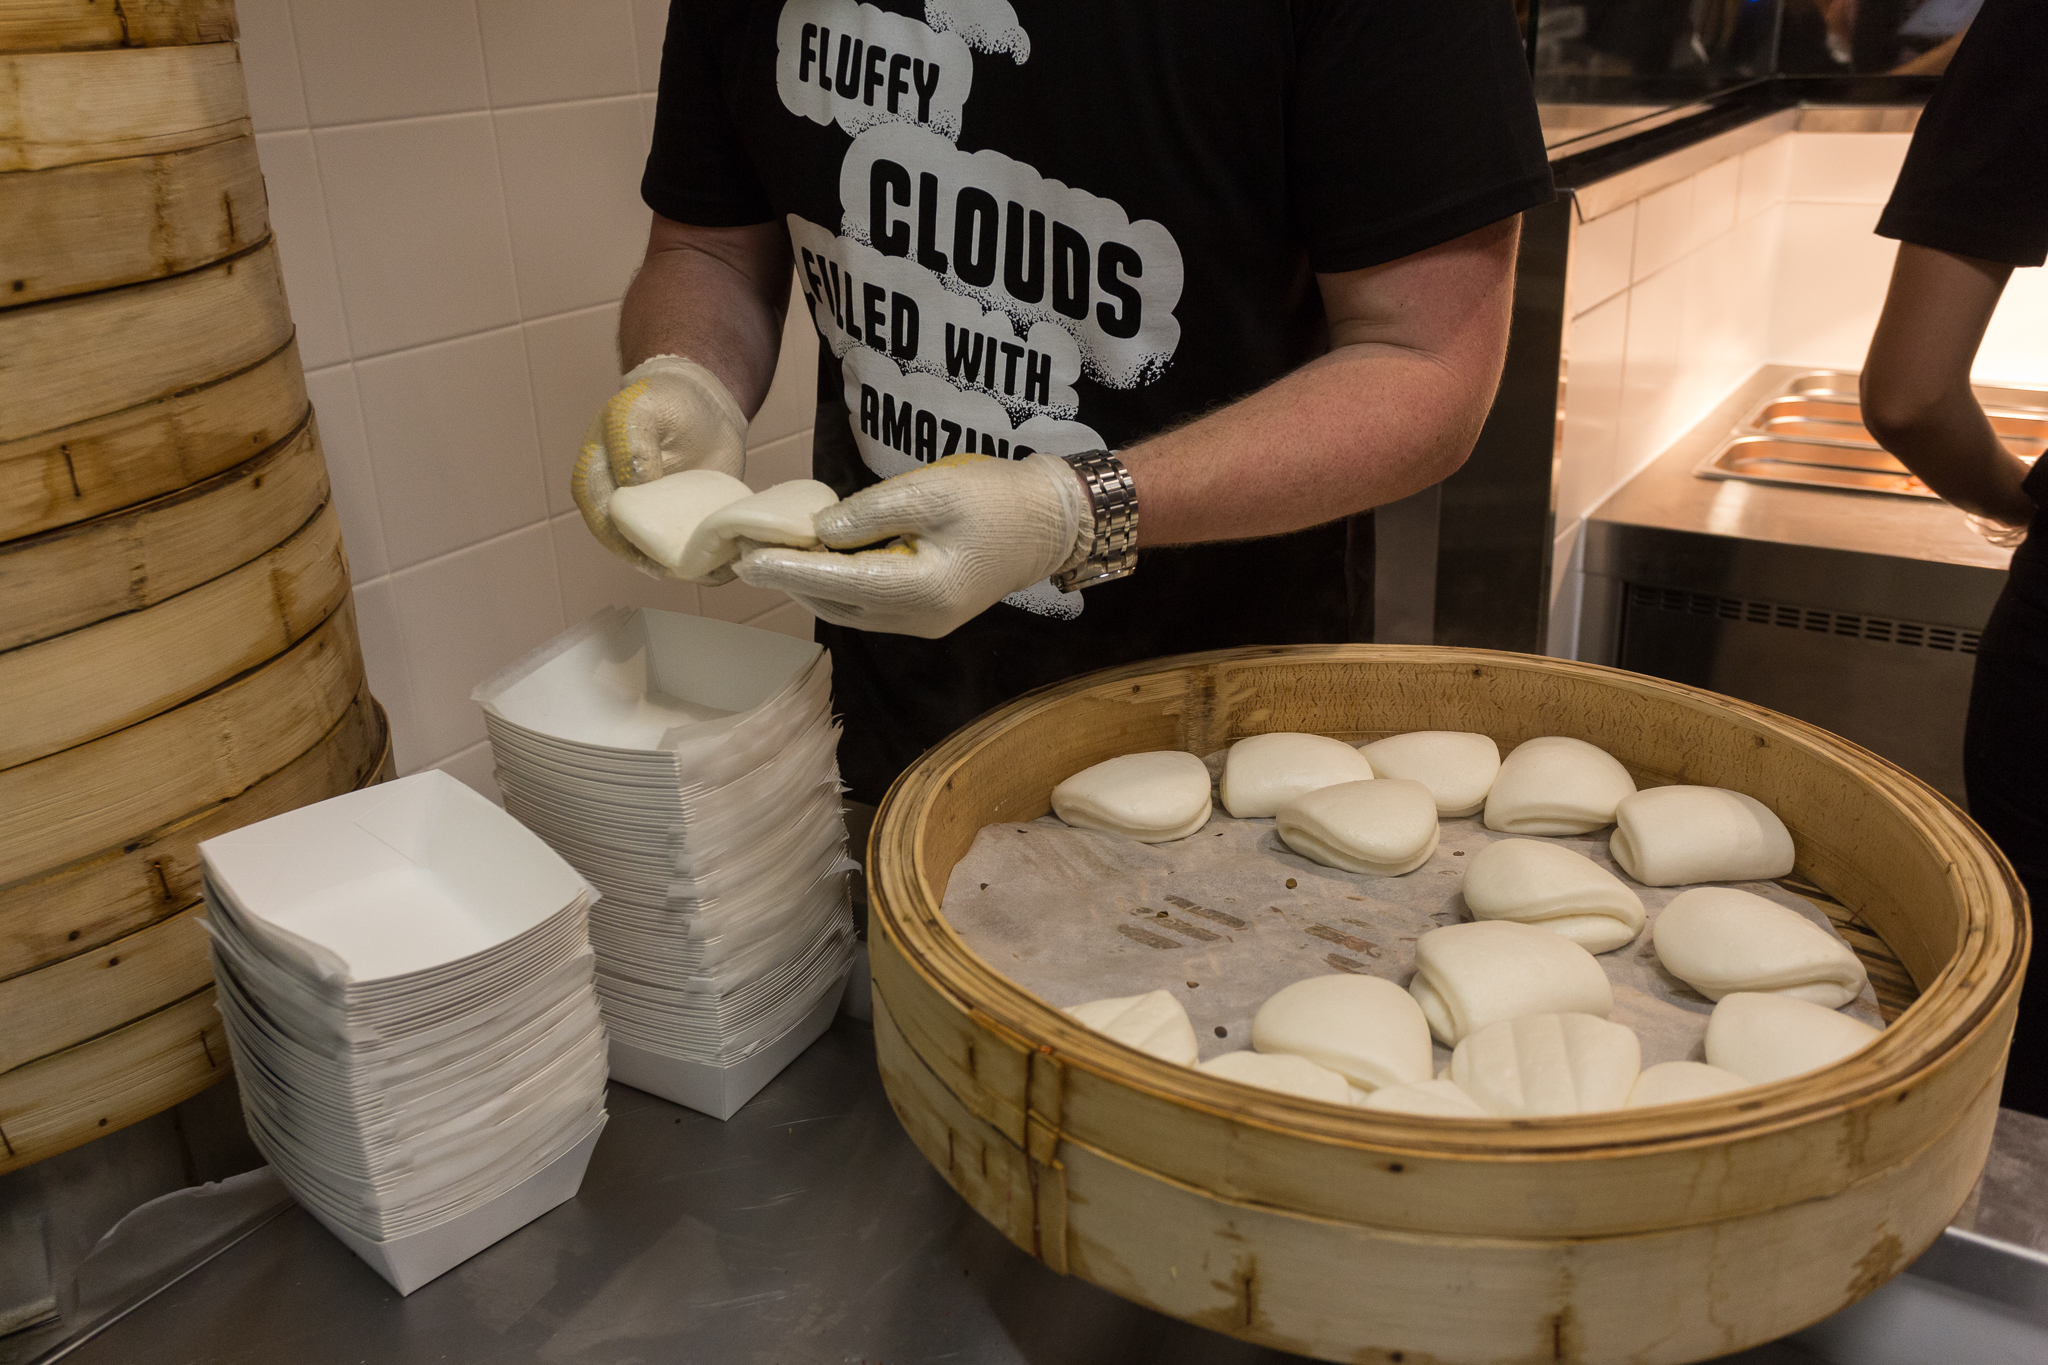 dji port boat-4 Cloud Thief - Menu photo.20 (high res credit Tom Delaney).JPG